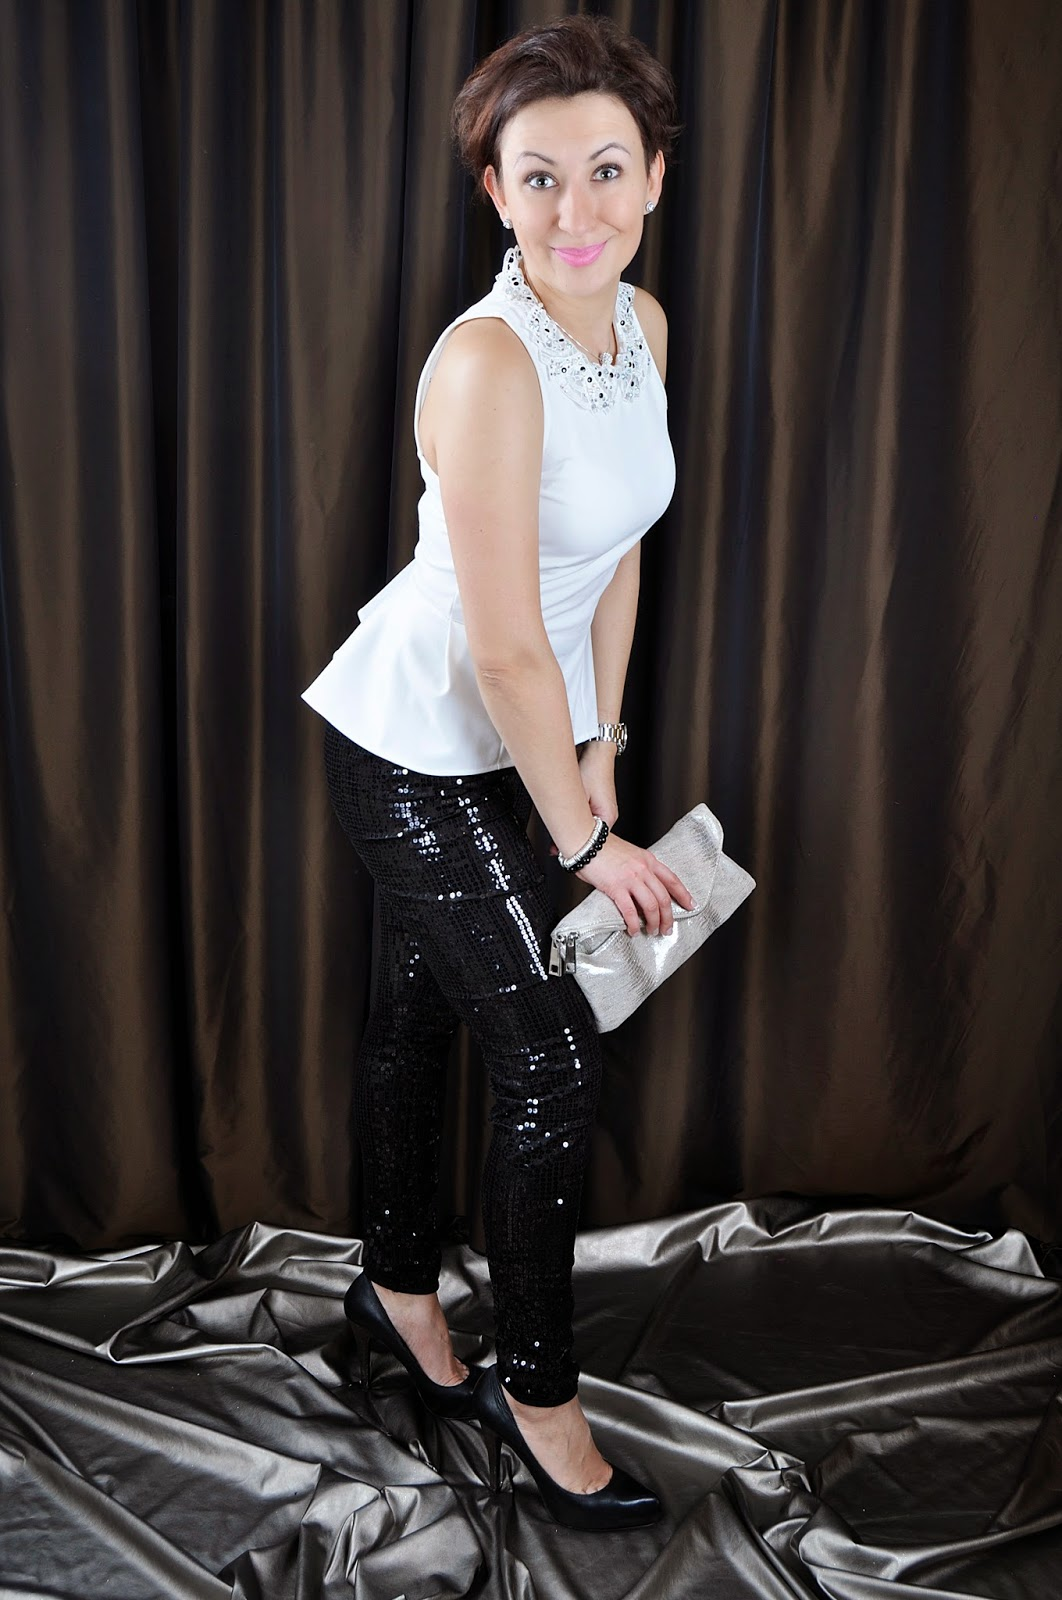 Black and White Outfit, Fashion, moda, New Look Leather heels, New Year's Eve Outfit, Partywear, River Island silver clutch bag, Sequin black leggins, Styl, Stylizacja, TOPSHOP white top, Adriana Style Blog, Blog modowy Puławy